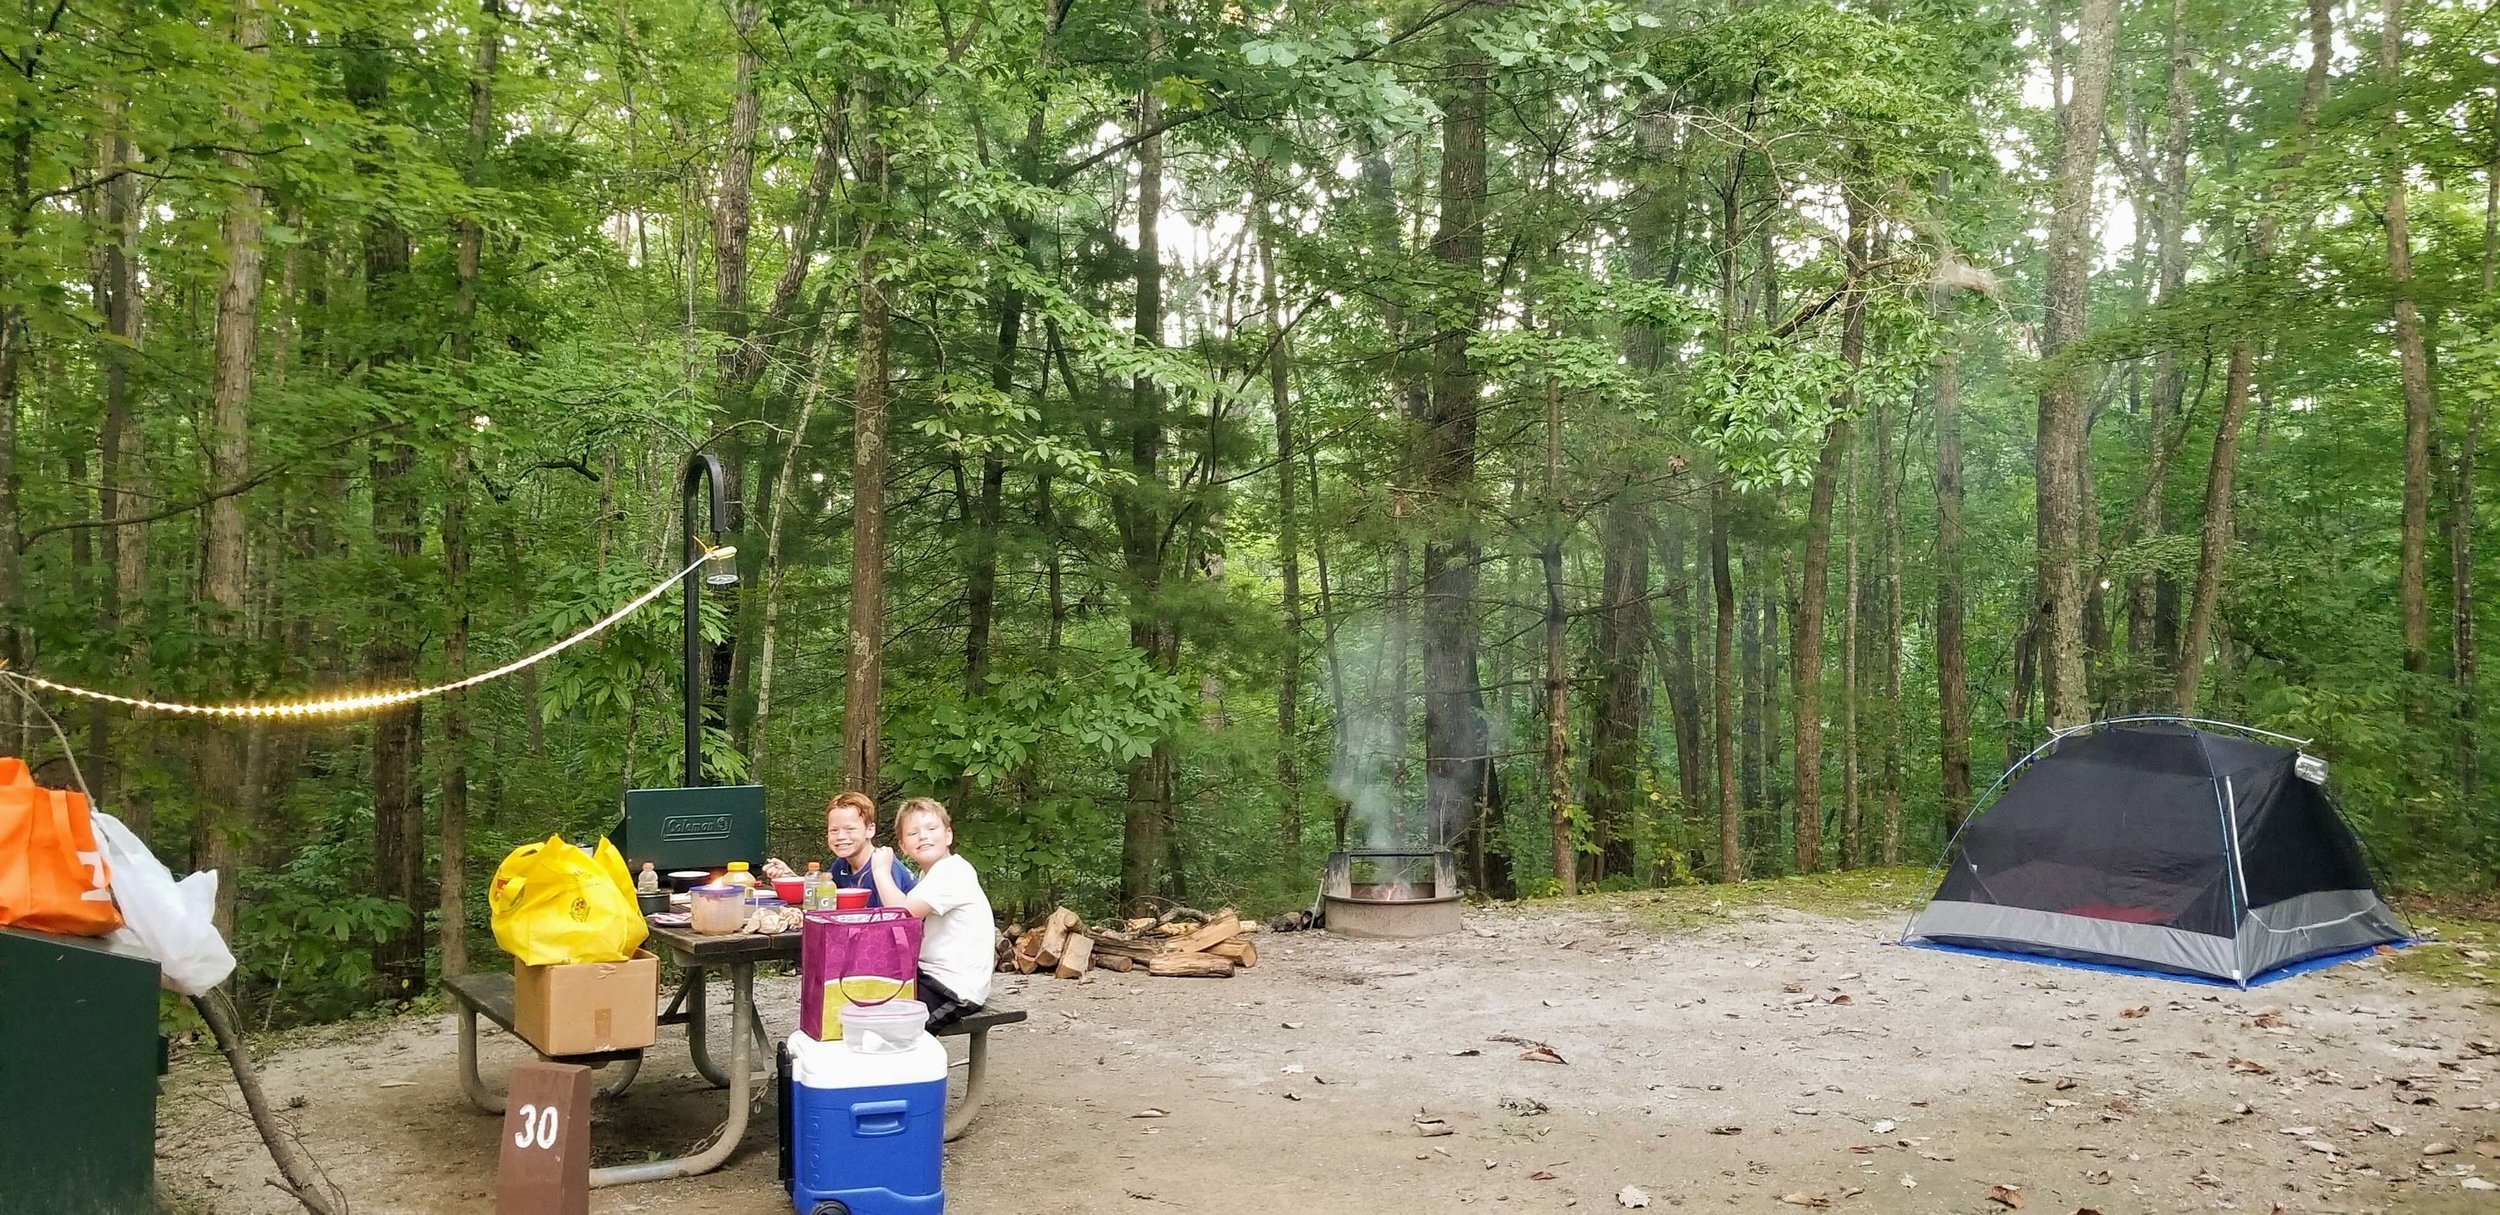 We love the big campsites and nice bathrooms at Bandy Creek Campground.